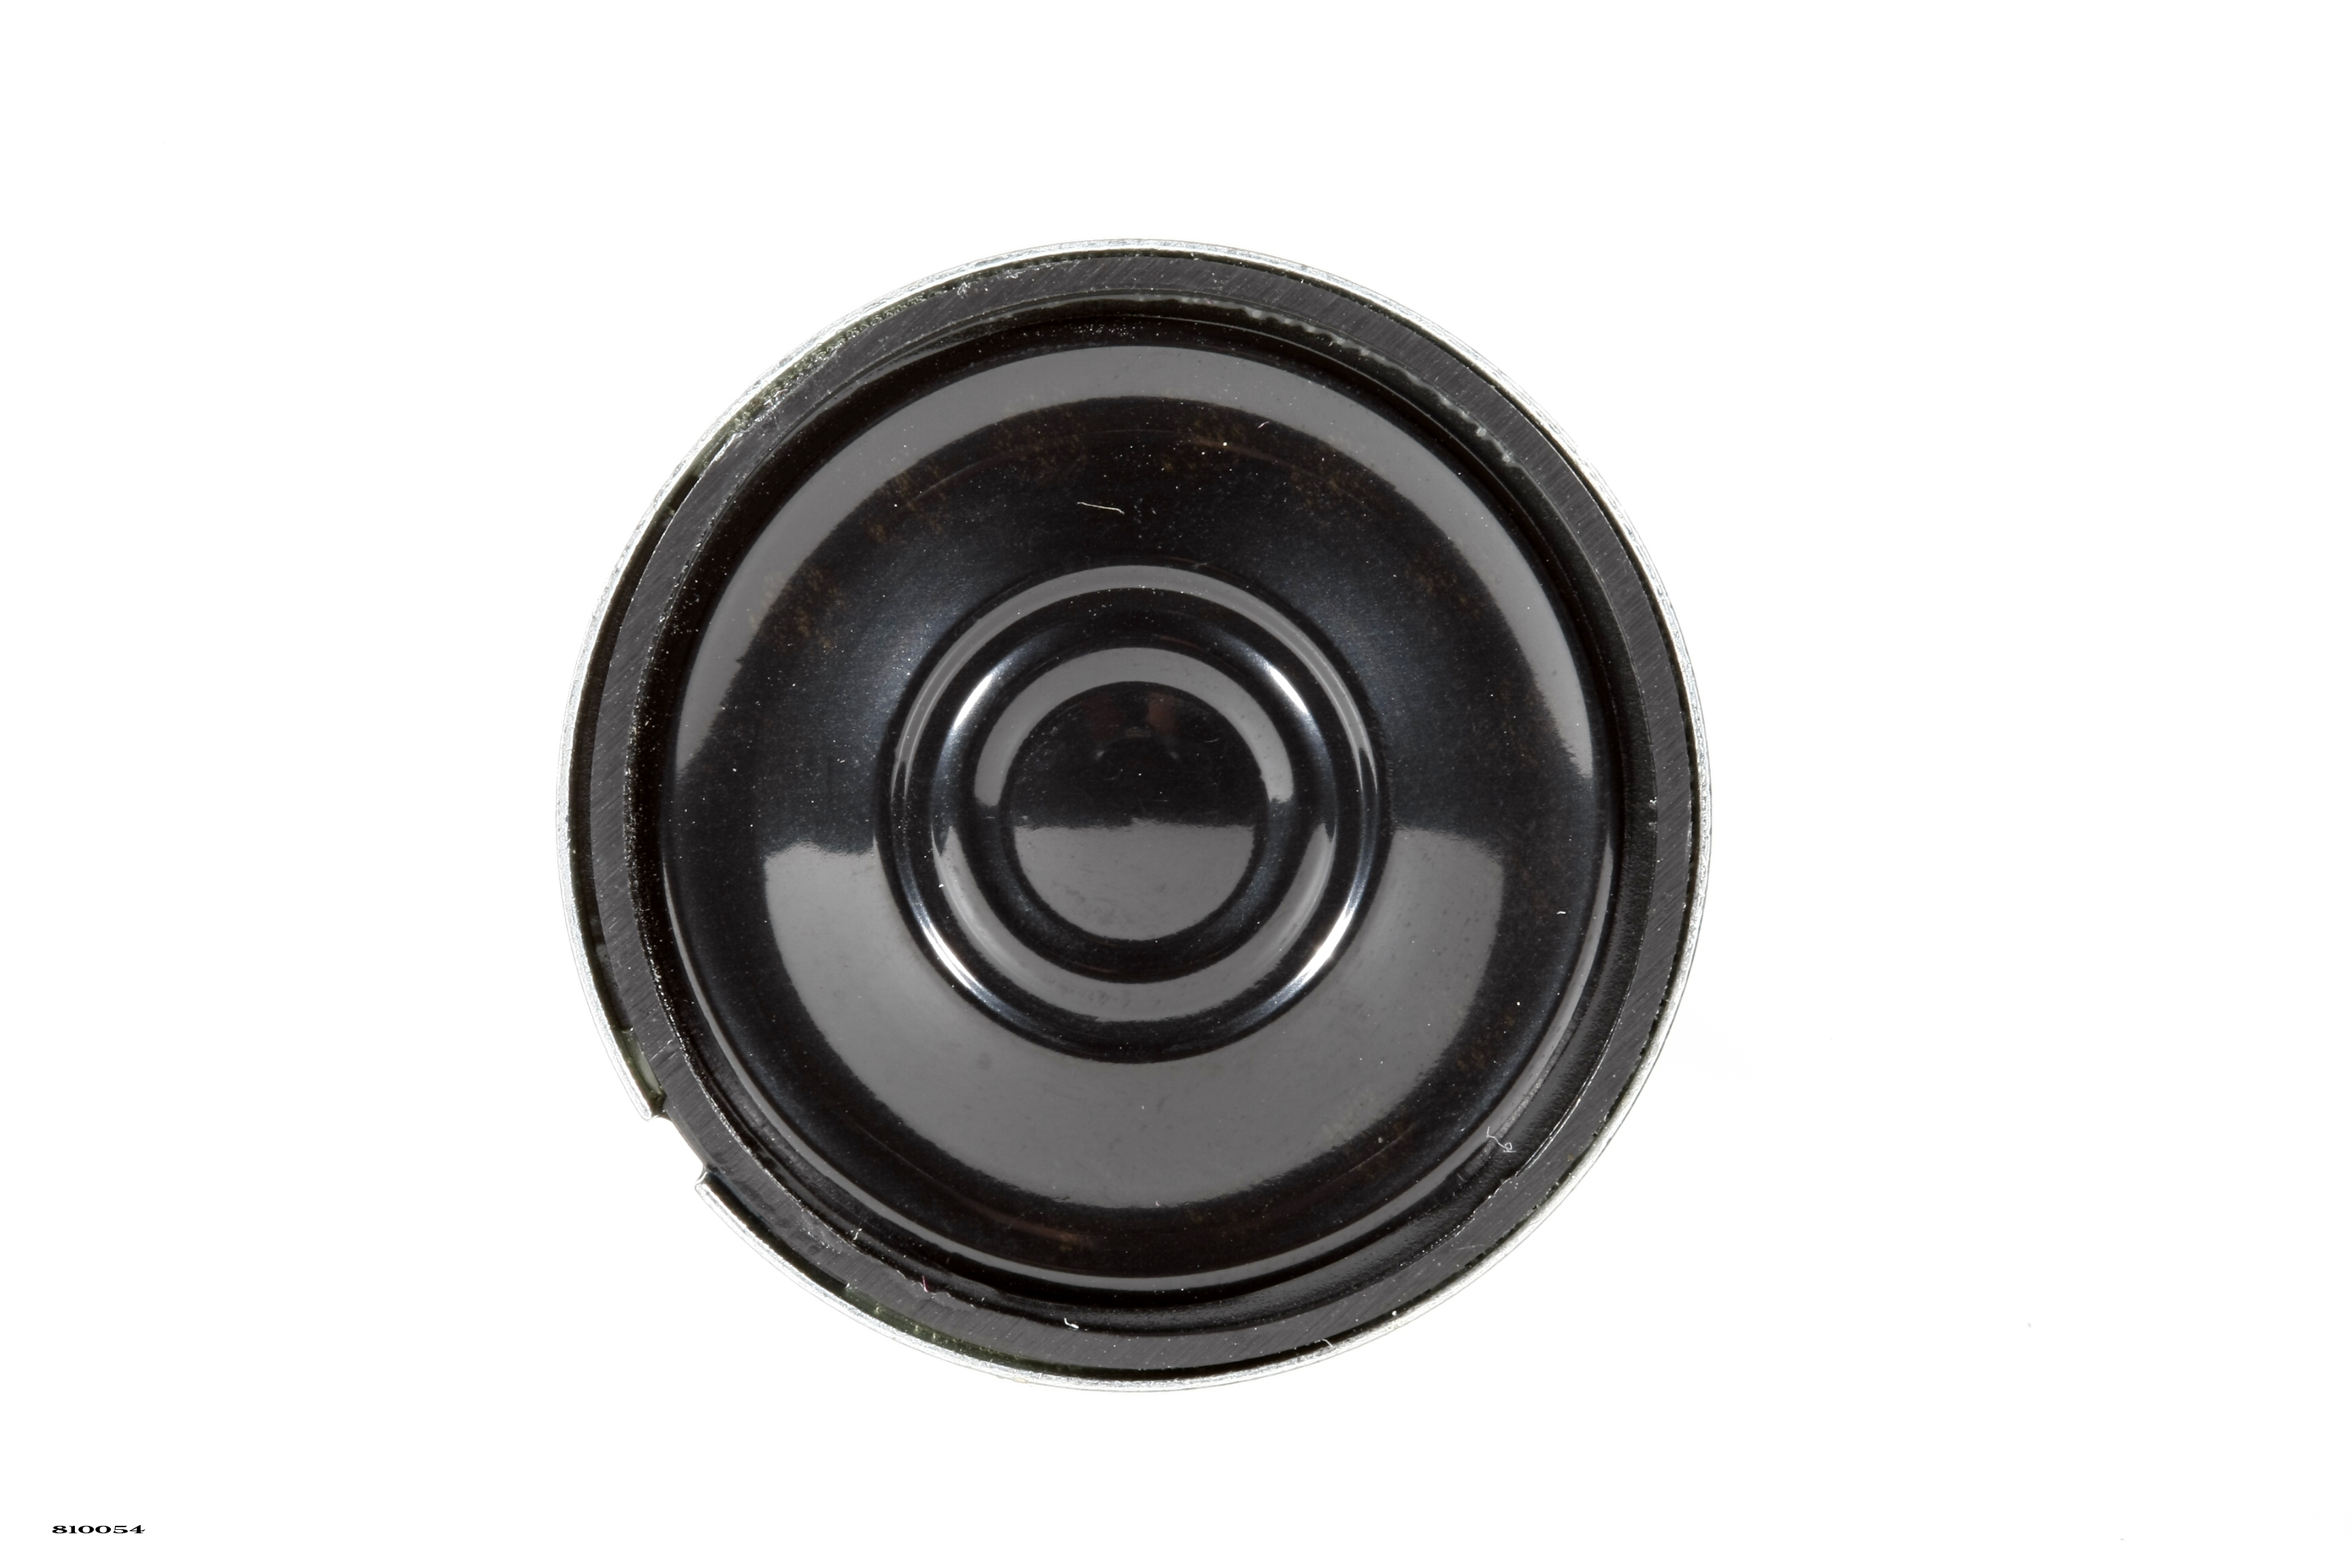 SOUNDTRAXX 810153 28 mm Speaker